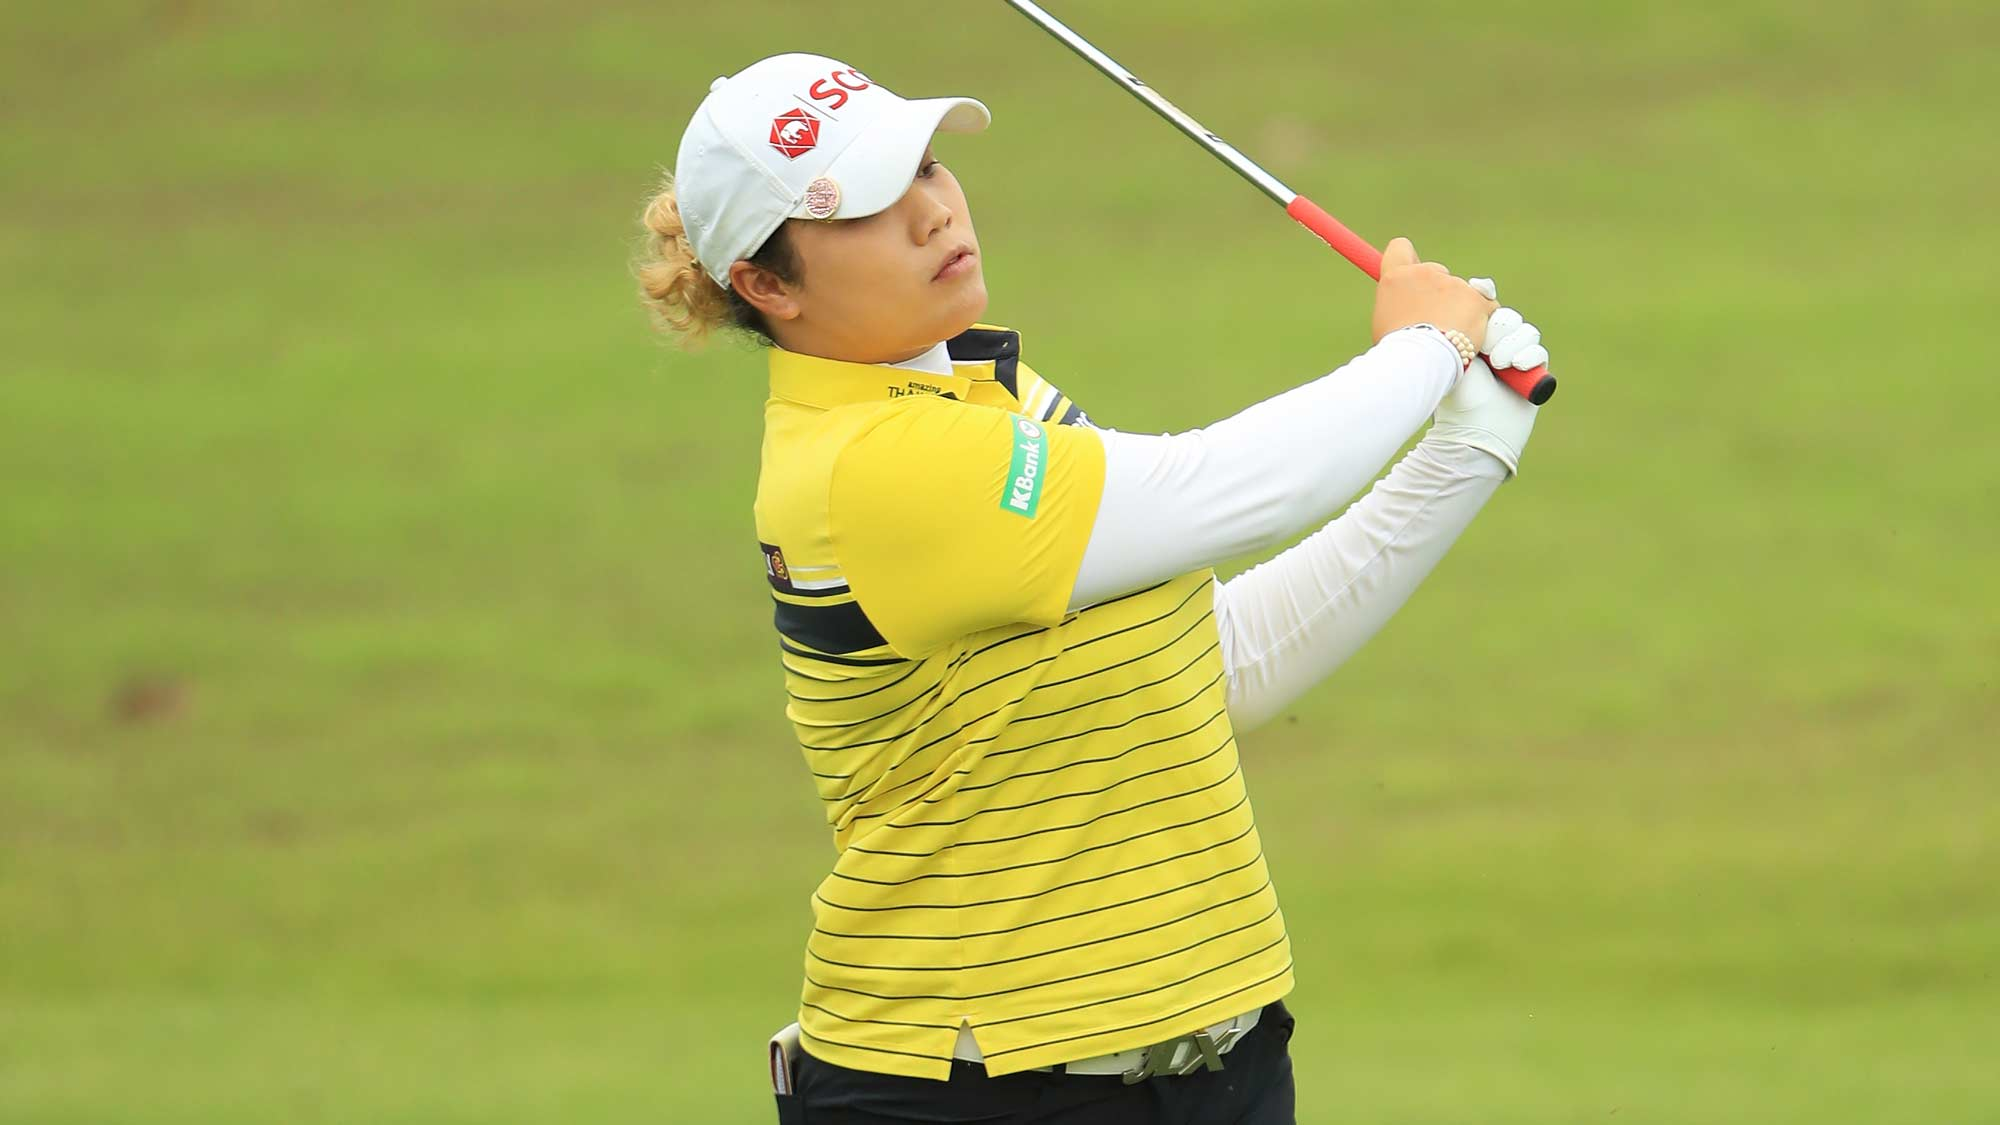 Ariya Jutanugarn of Thailand plays her second shot on the first hole during the first round of the HSBC Women's World Championship at Sentosa Golf Club on February 28, 2019 in Singapore.